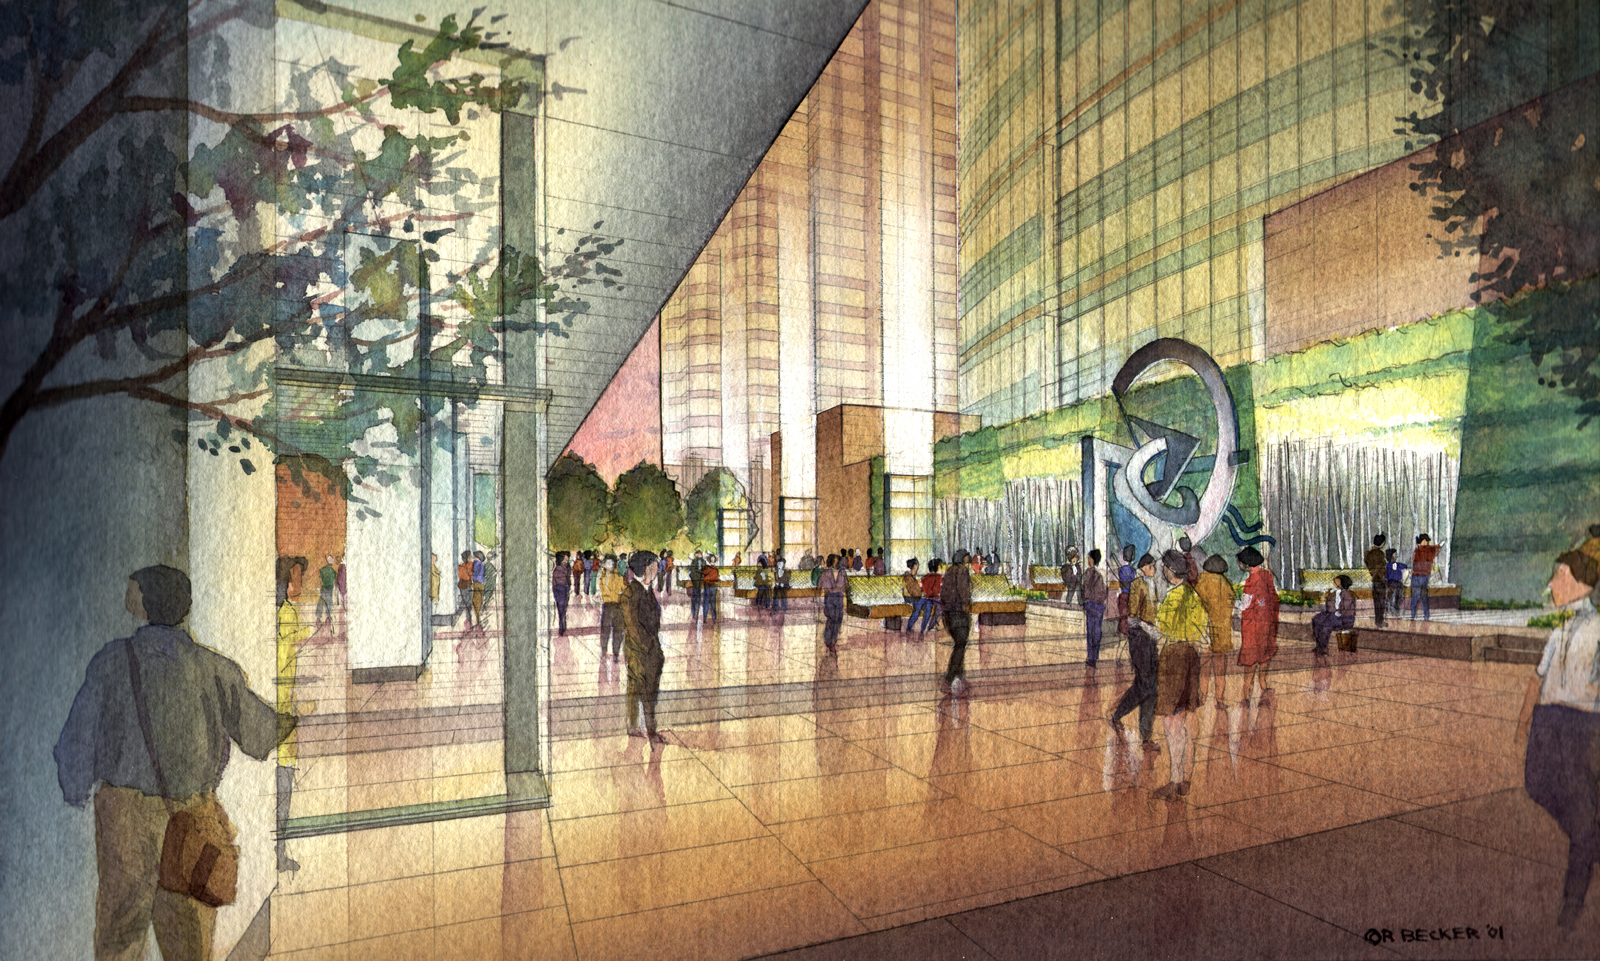 TSP 555 Plaza Watercolor rendering